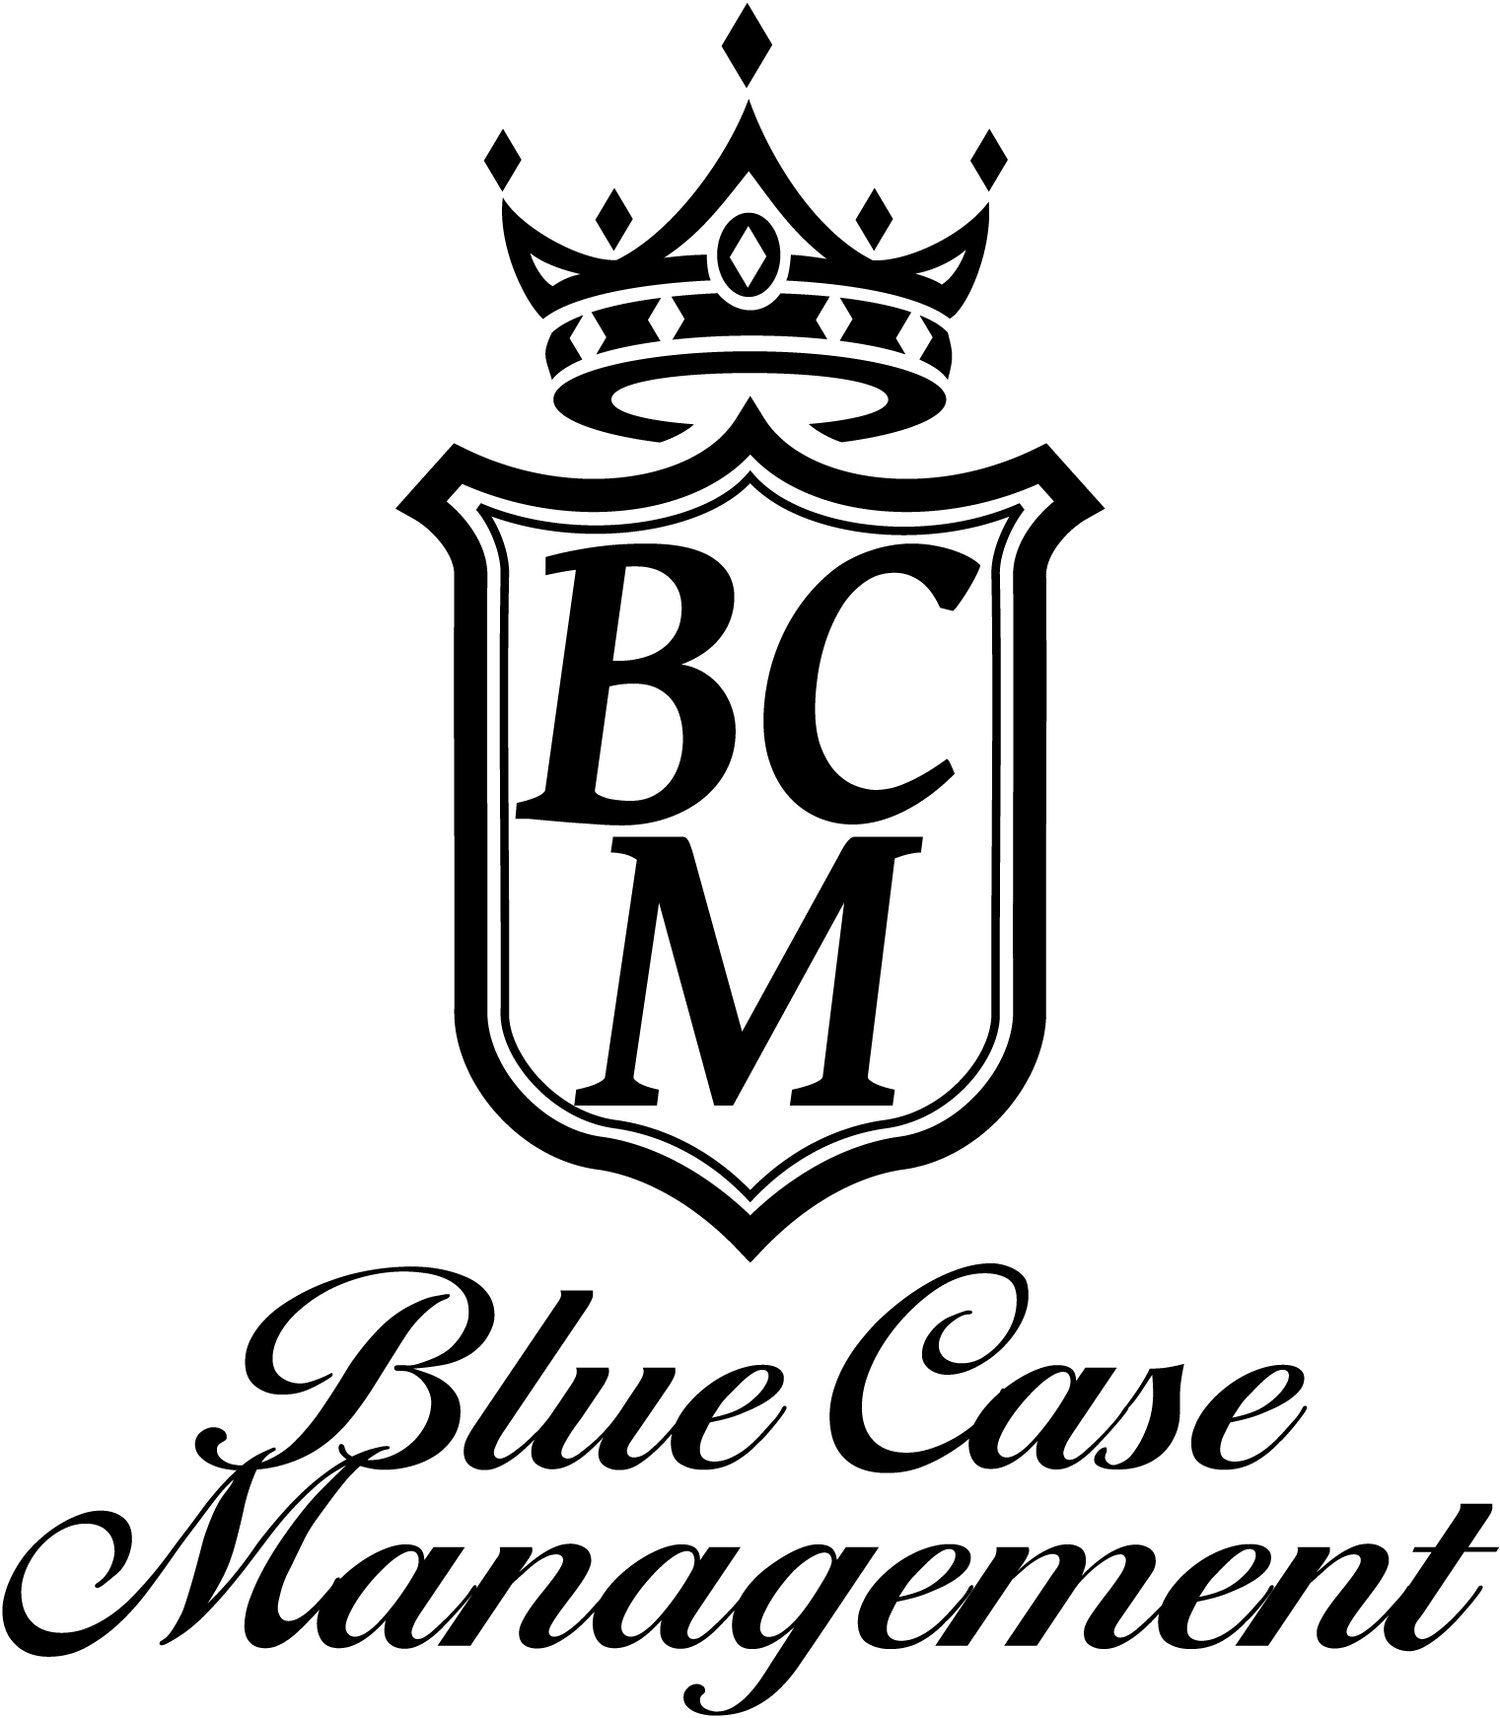 Blue Case Management